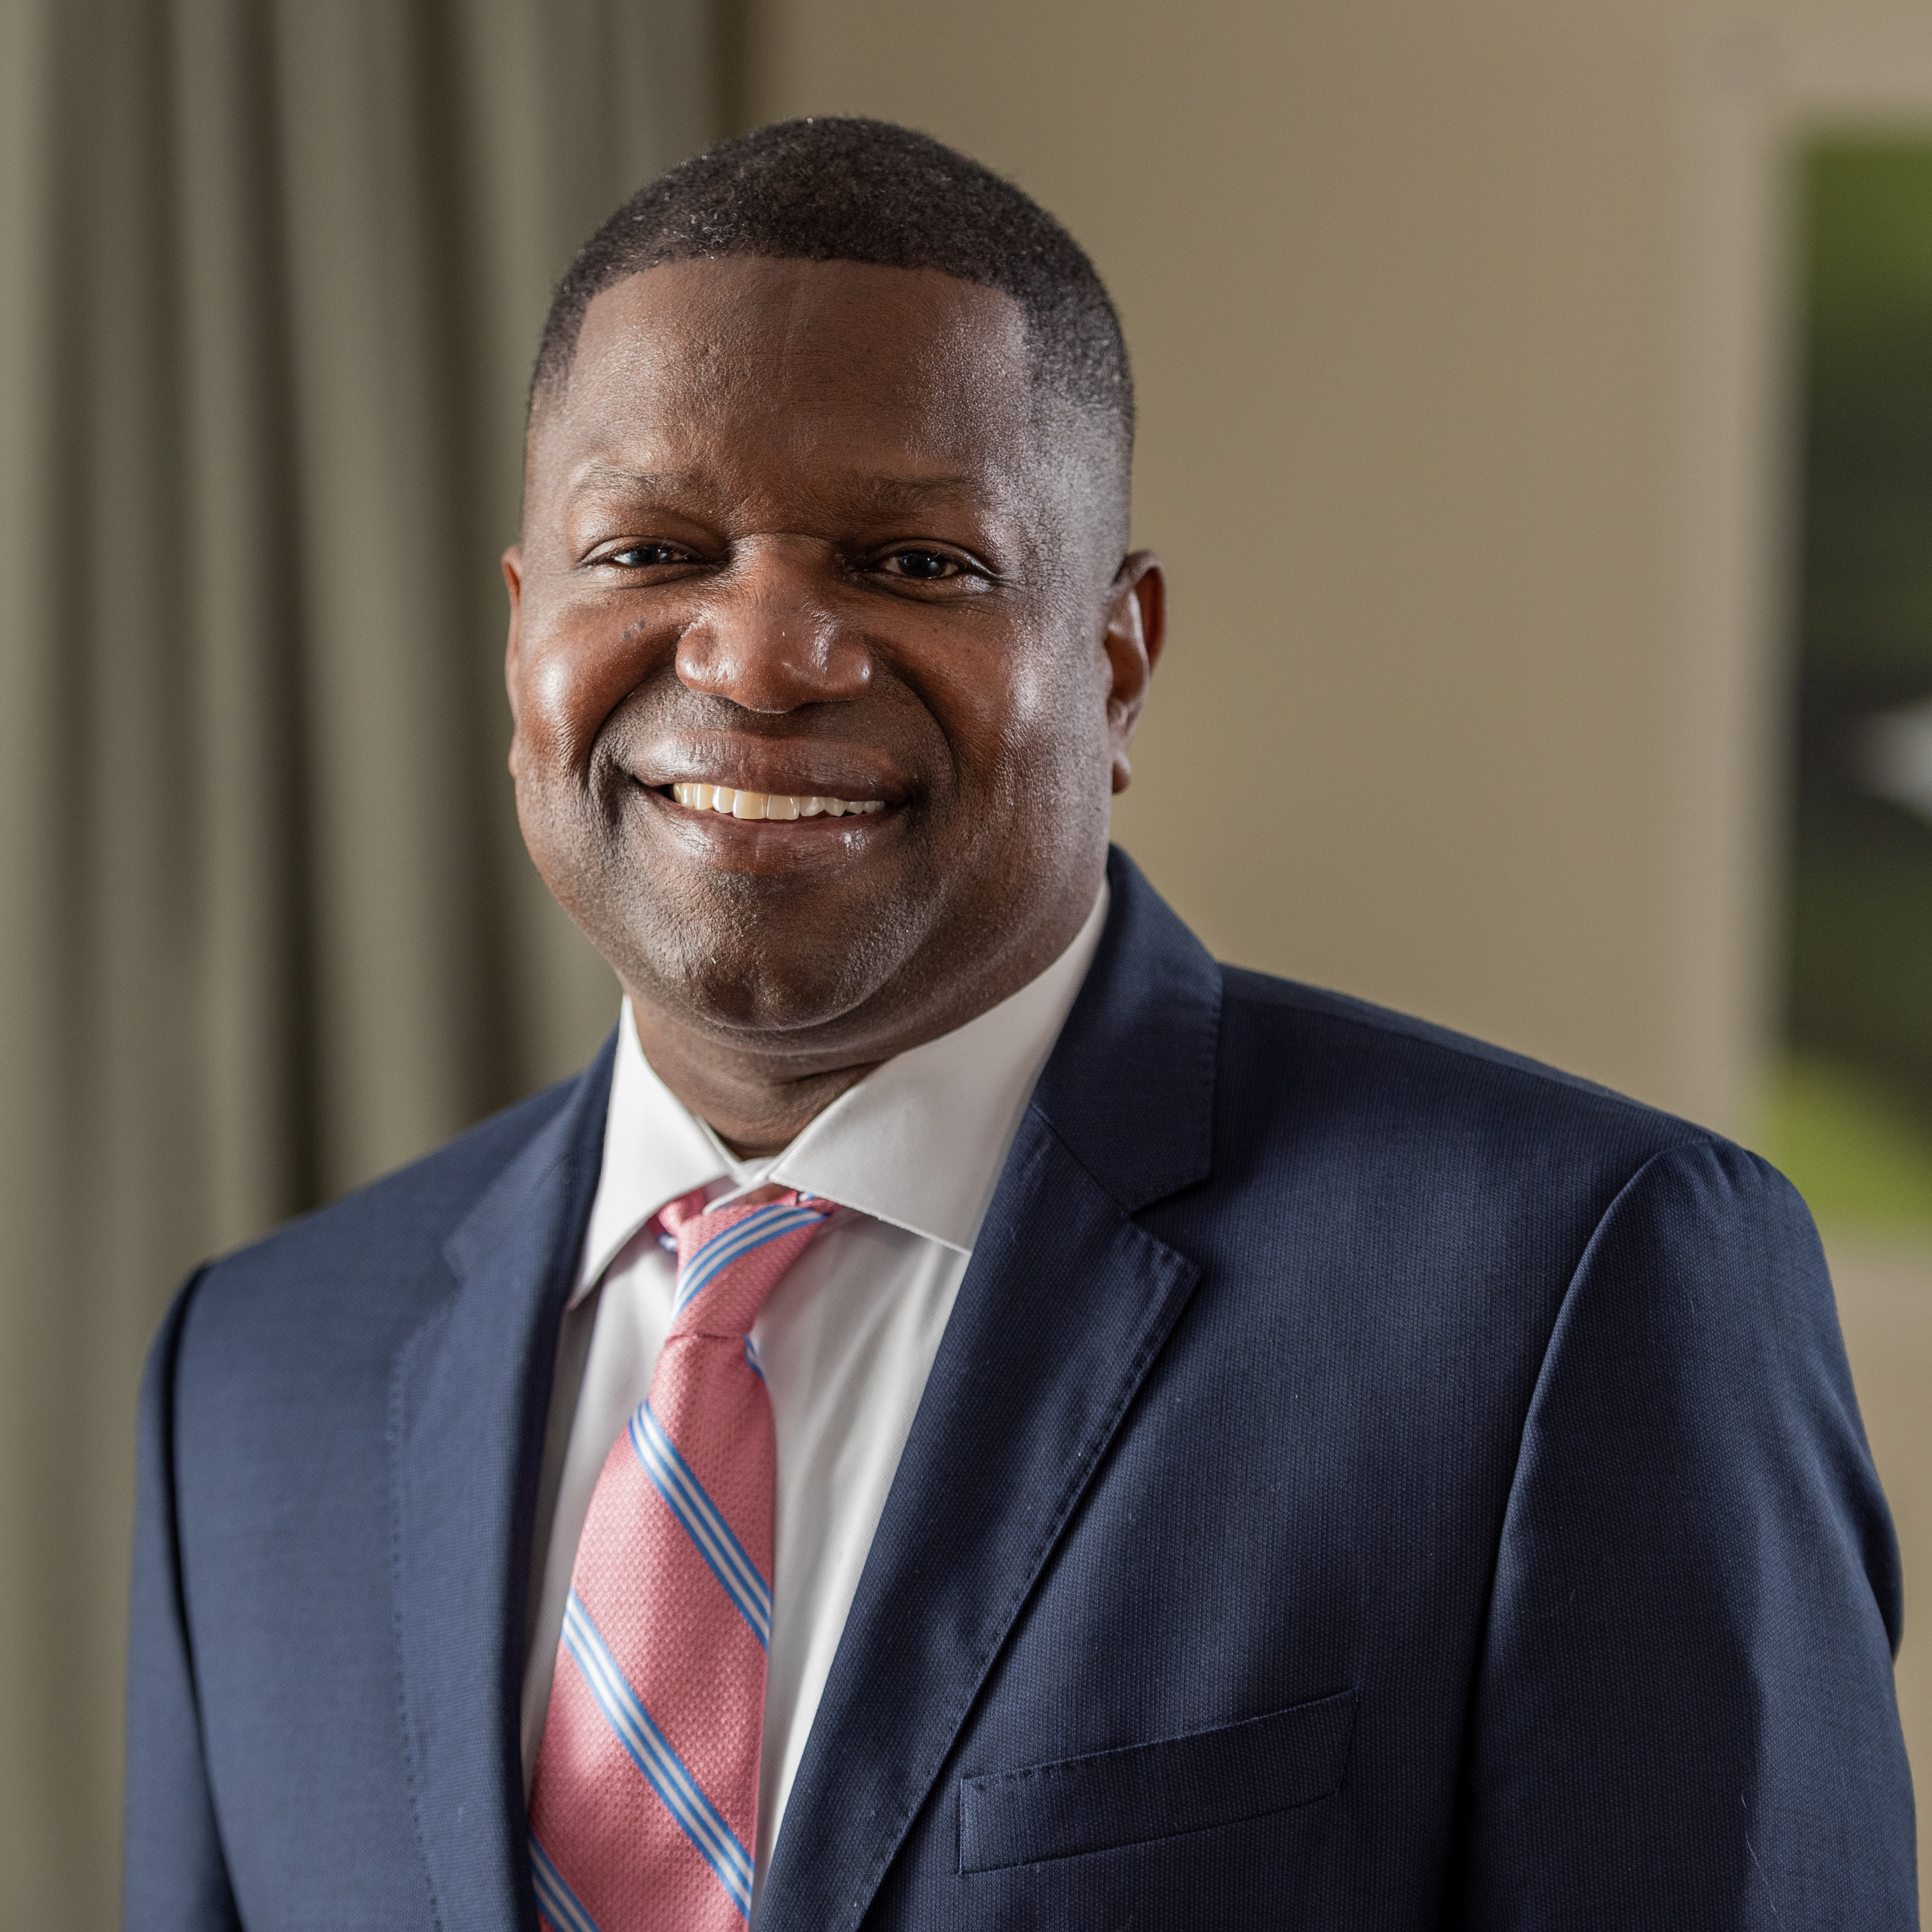 Vincent Johnson, MBA, has joinedFlagler Health+as Executive Vice President and Chief Operating Officer.